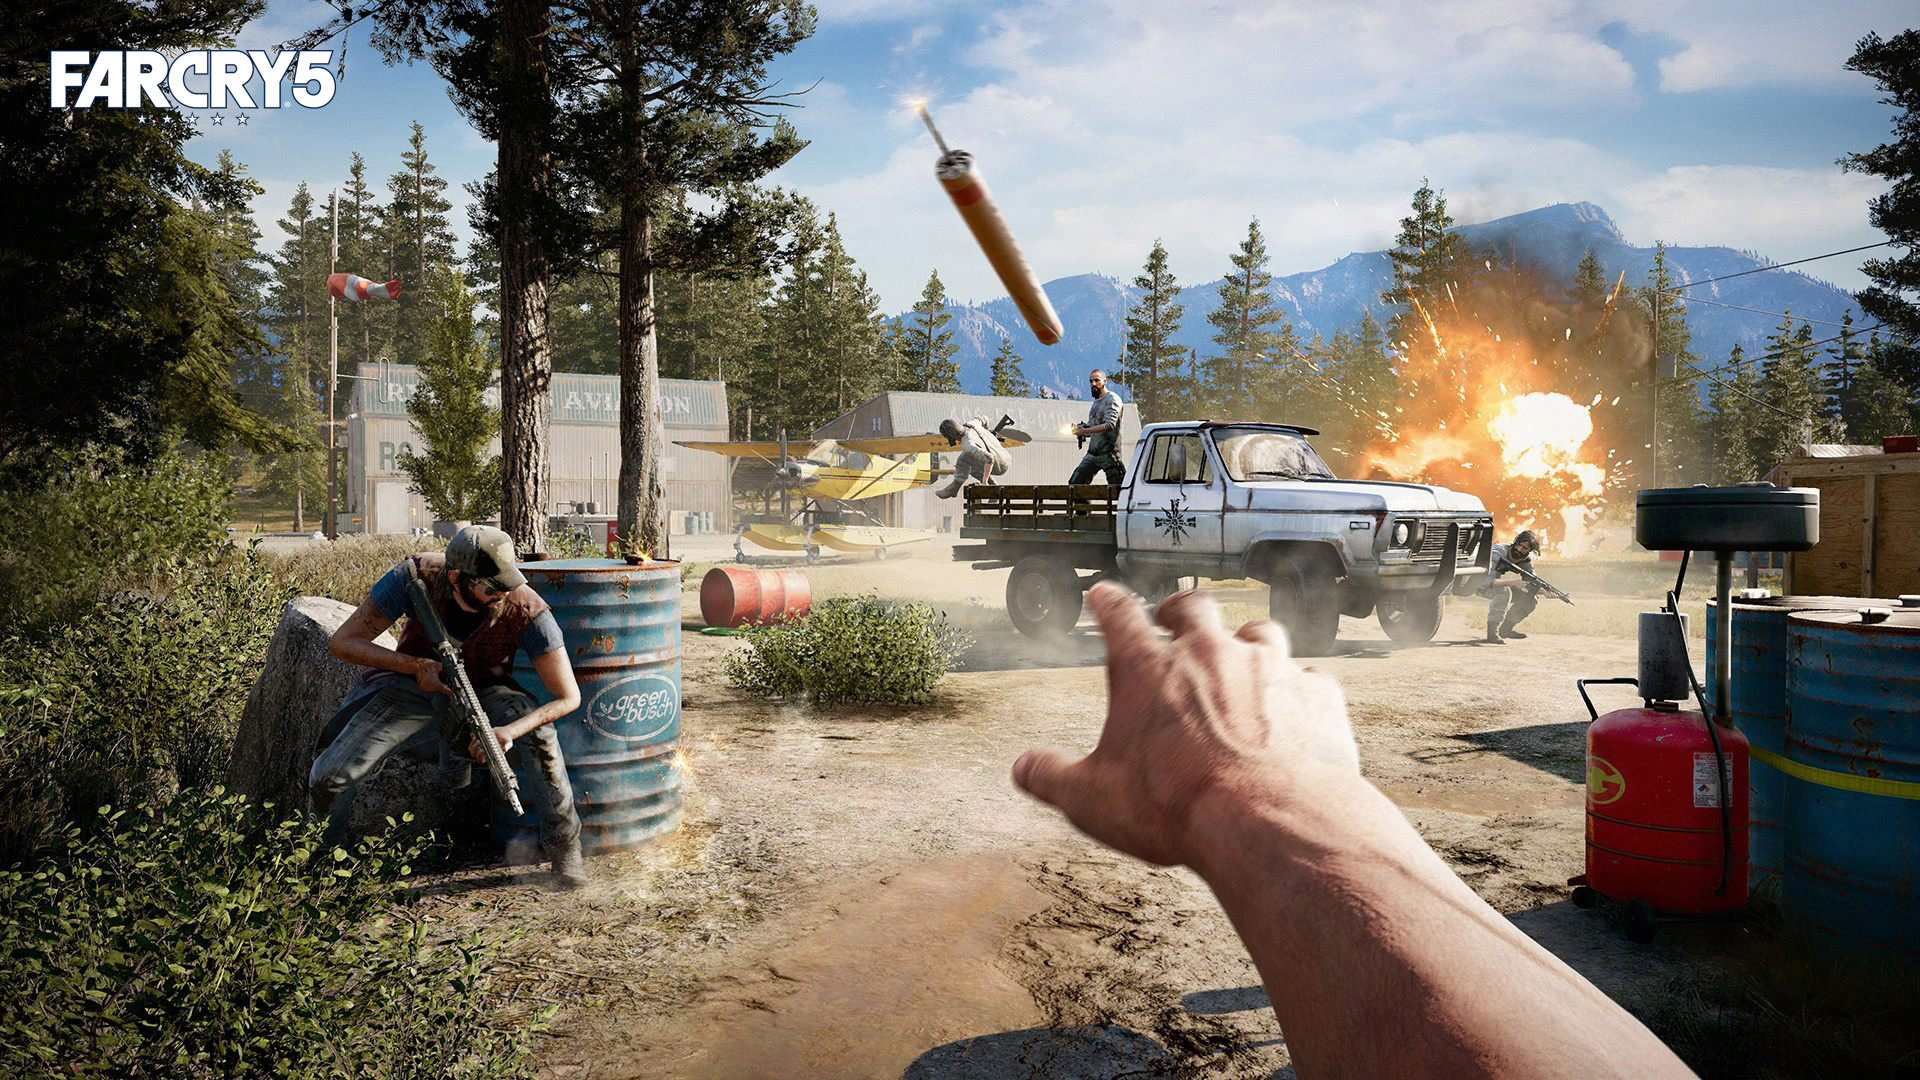 Free Far Cry 5 Wallpaper in 1920x1080